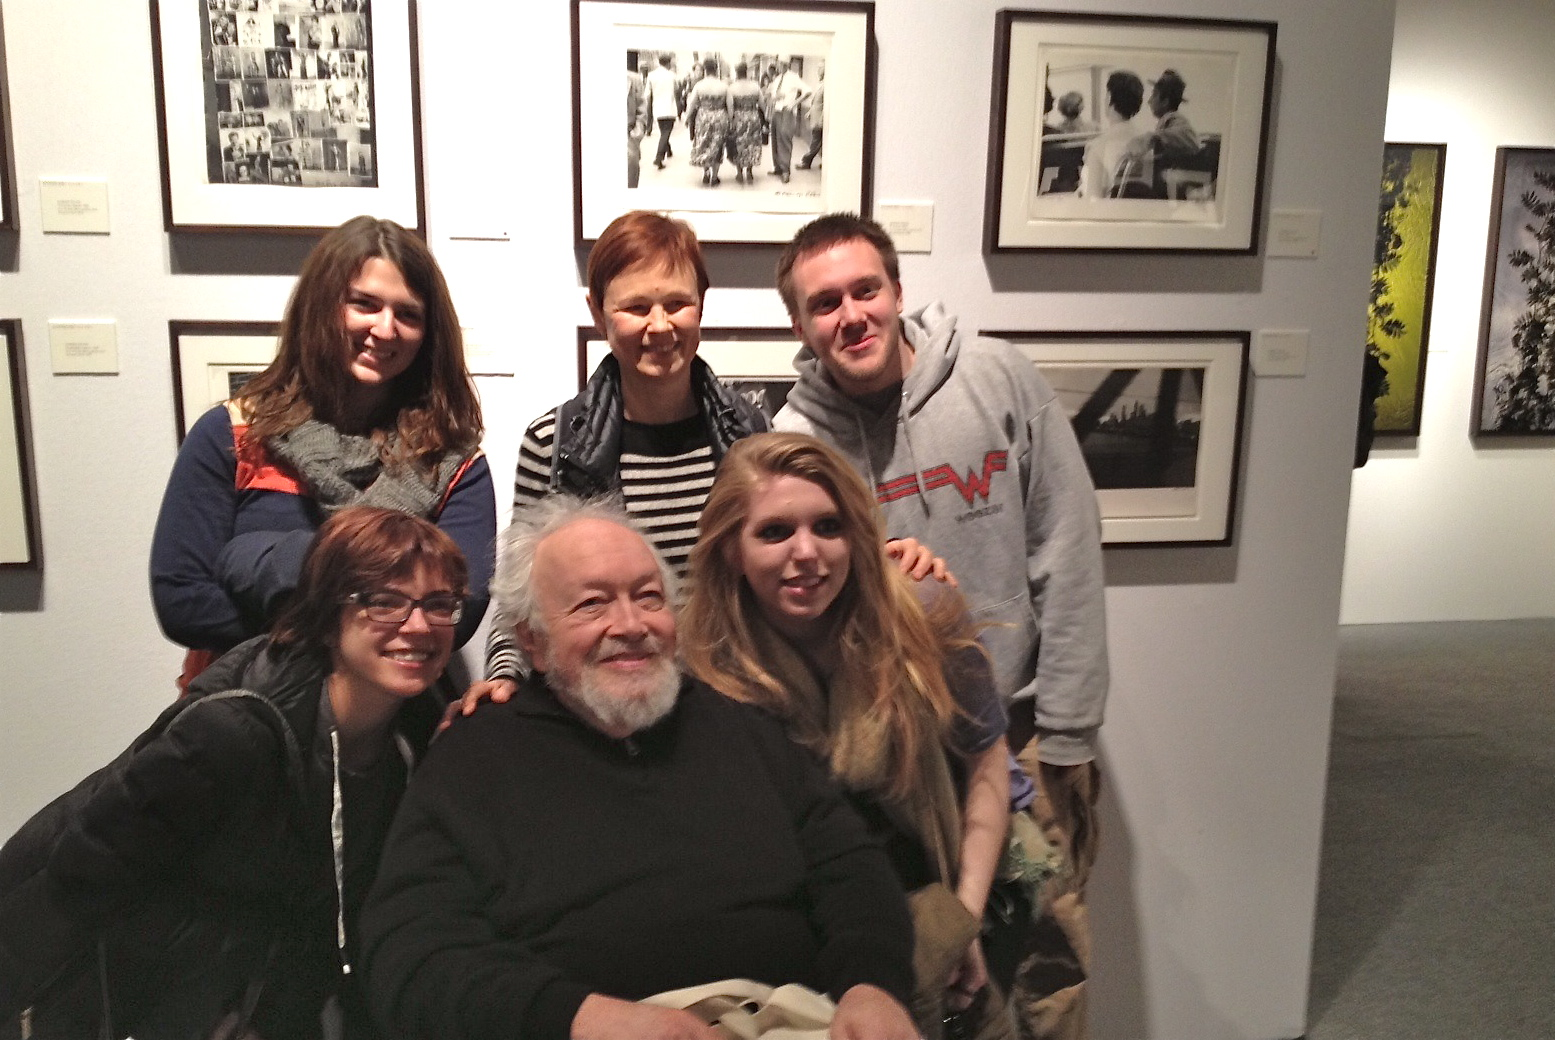 Here I am at AIPAD surrounded by students from The New Hampshire Institute of Art